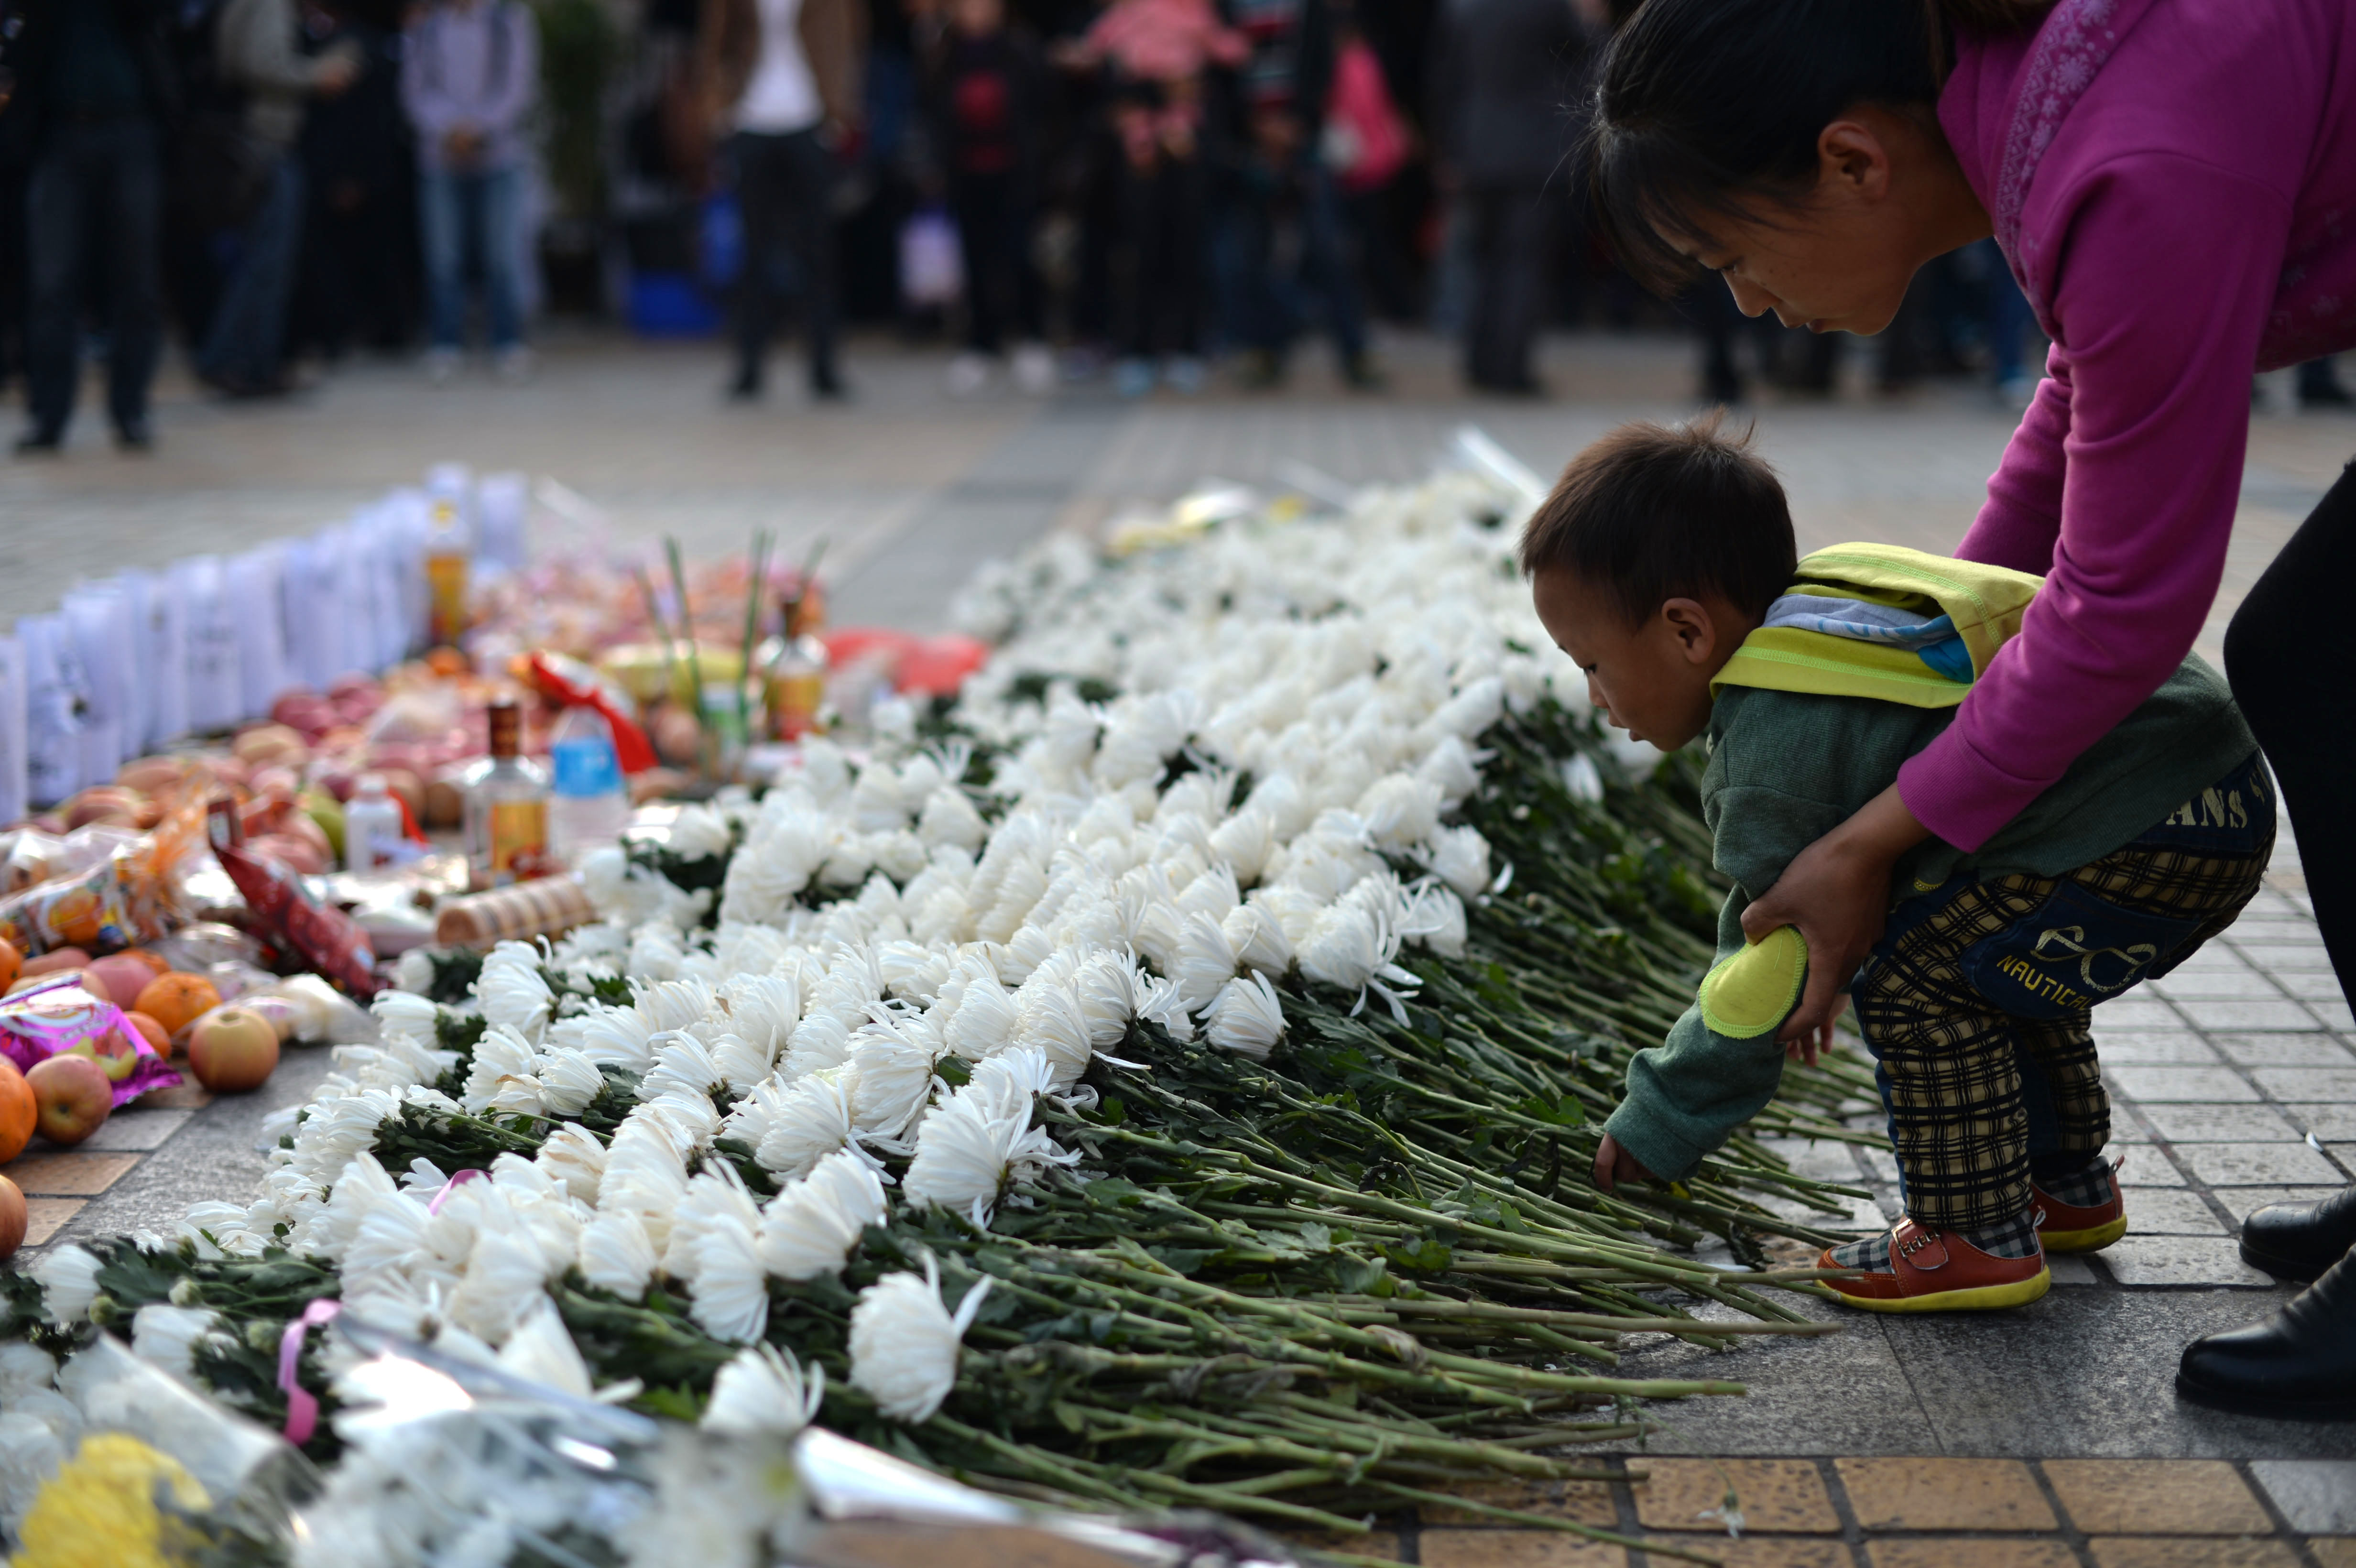 This picture taken on March 7, 2014, shows a child laying a flower at the scene of a terrorist attack at the main train station in Kunming, southwest China's Yunnan province. The attack in Kunming killed 29 people and injured 143